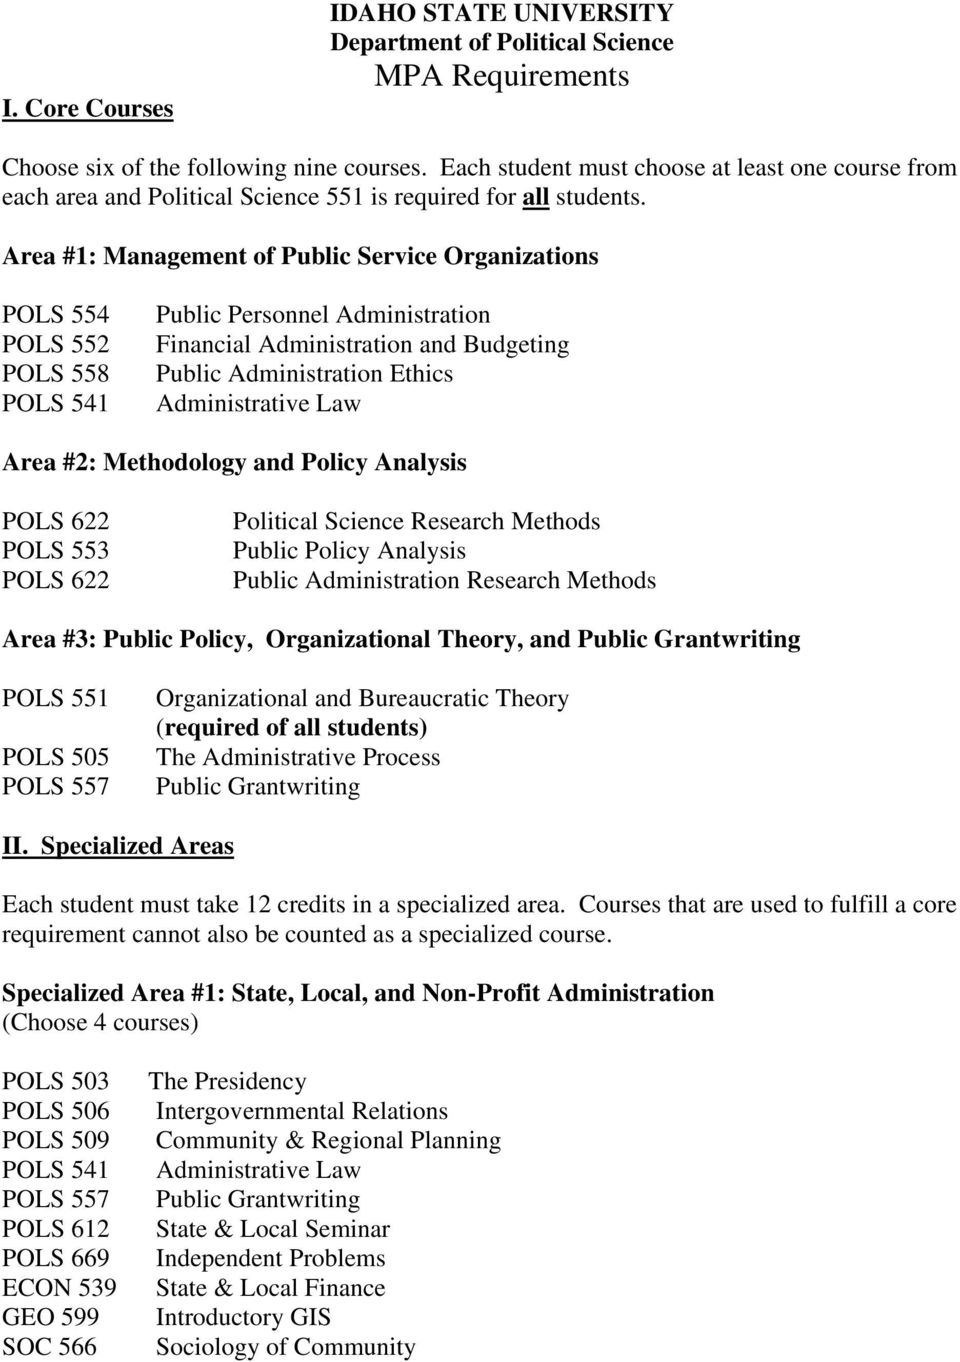 Area #1: Management of Public Service Organizations POLS 554 POLS 552 POLS 558 POLS 541 Public Personnel Administration Financial Administration and Budgeting Public Administration Ethics